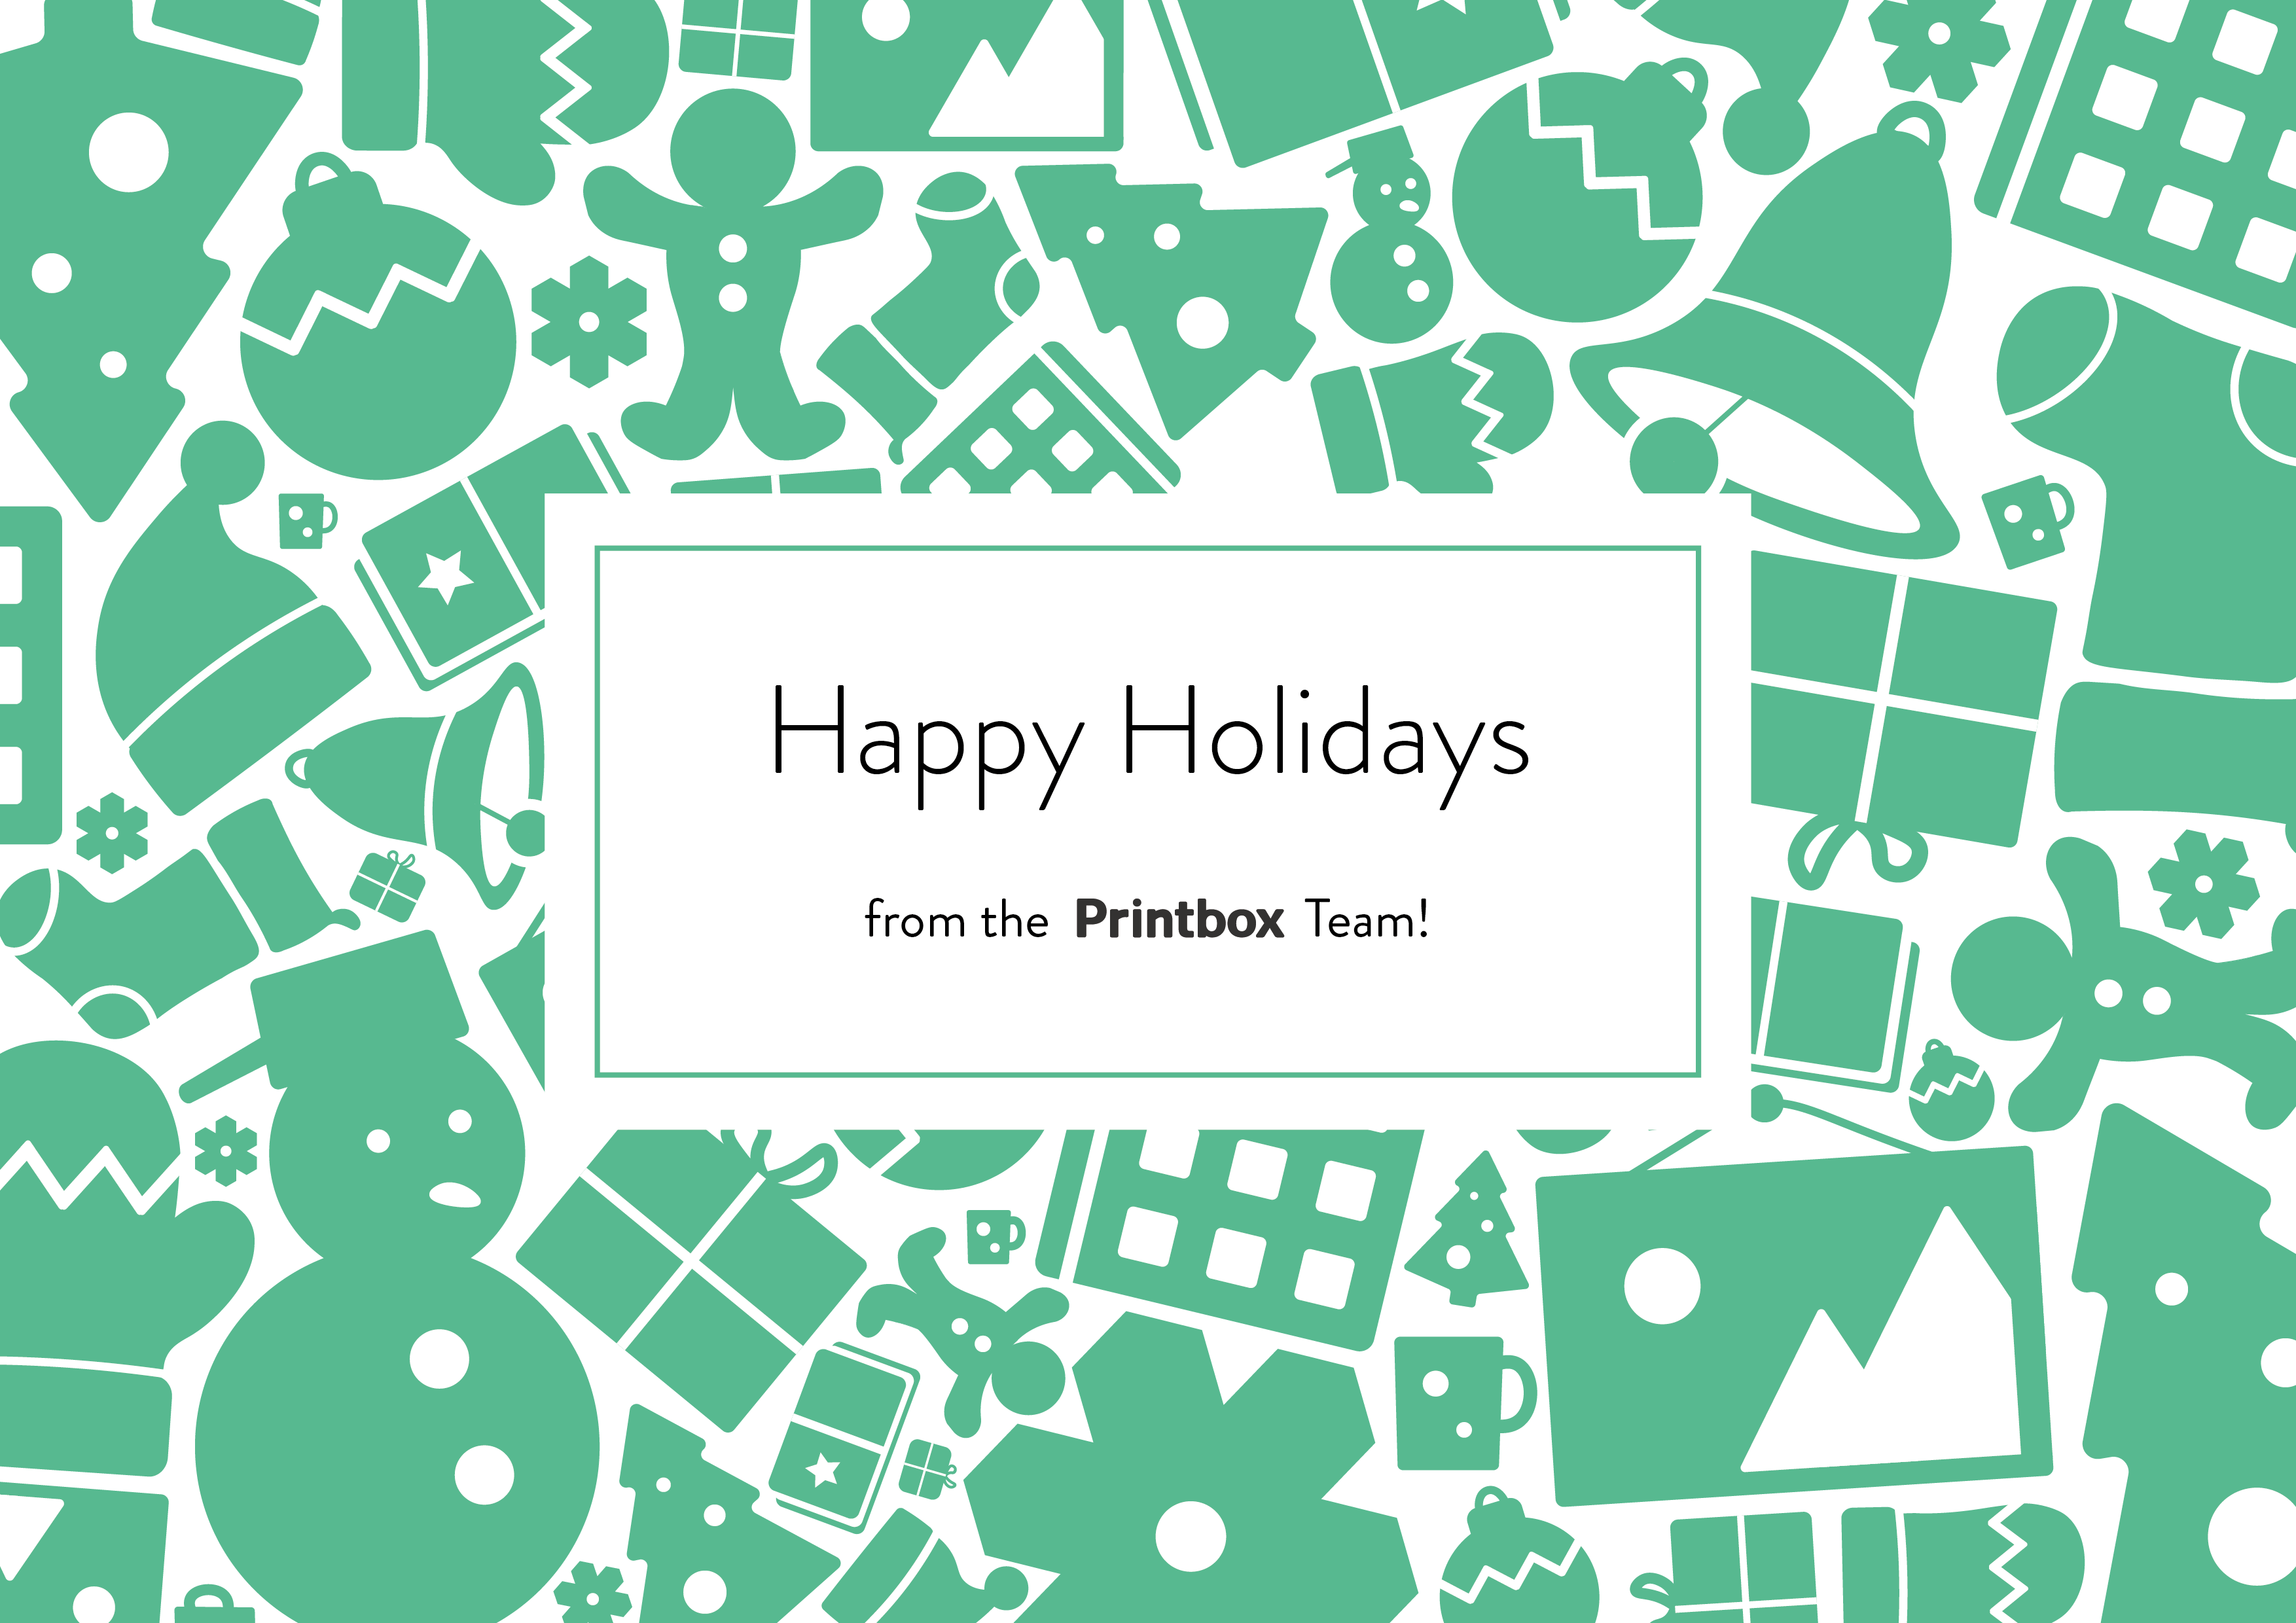 Happy holidays from the Printbox Team